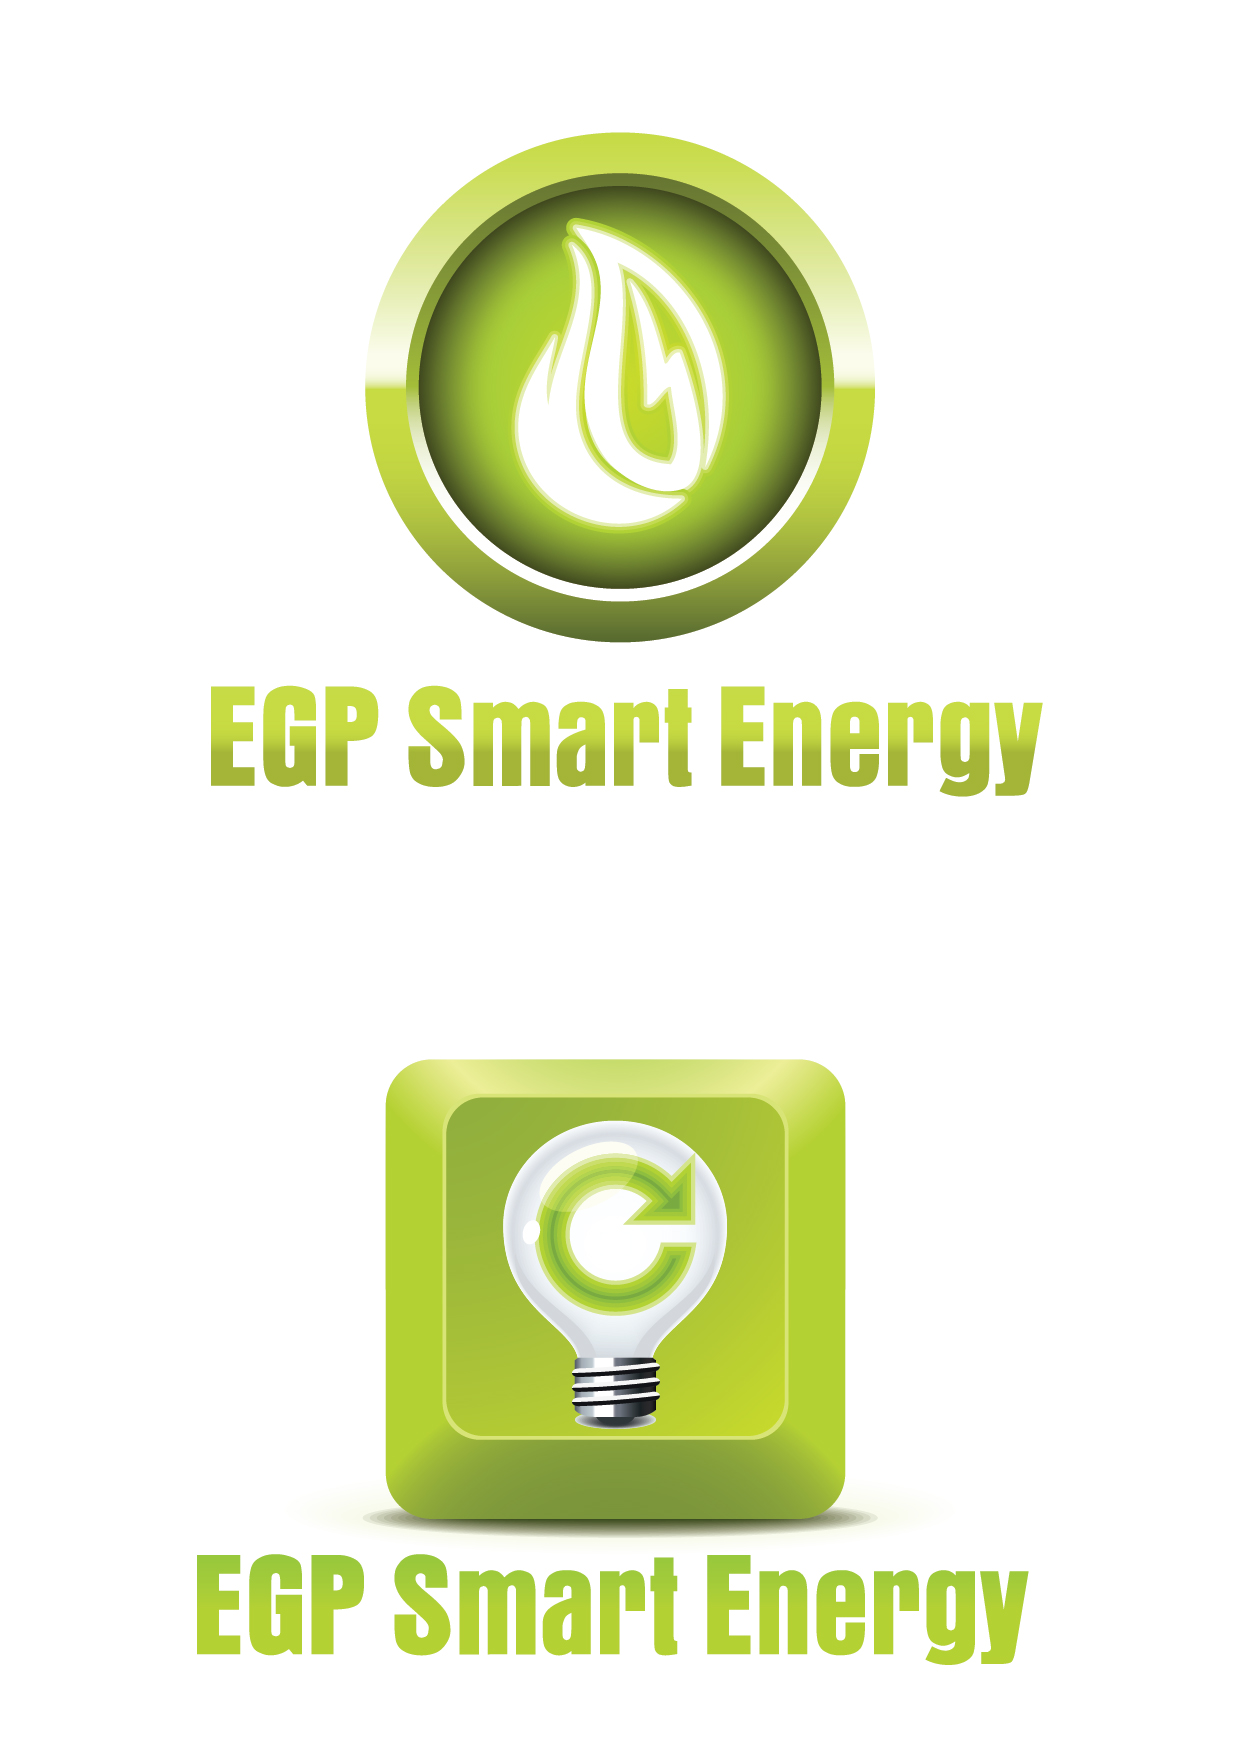 Logo Design by mediaproductionart - Entry No. 41 in the Logo Design Contest Captivating Logo Design for EGP Smart Energy.